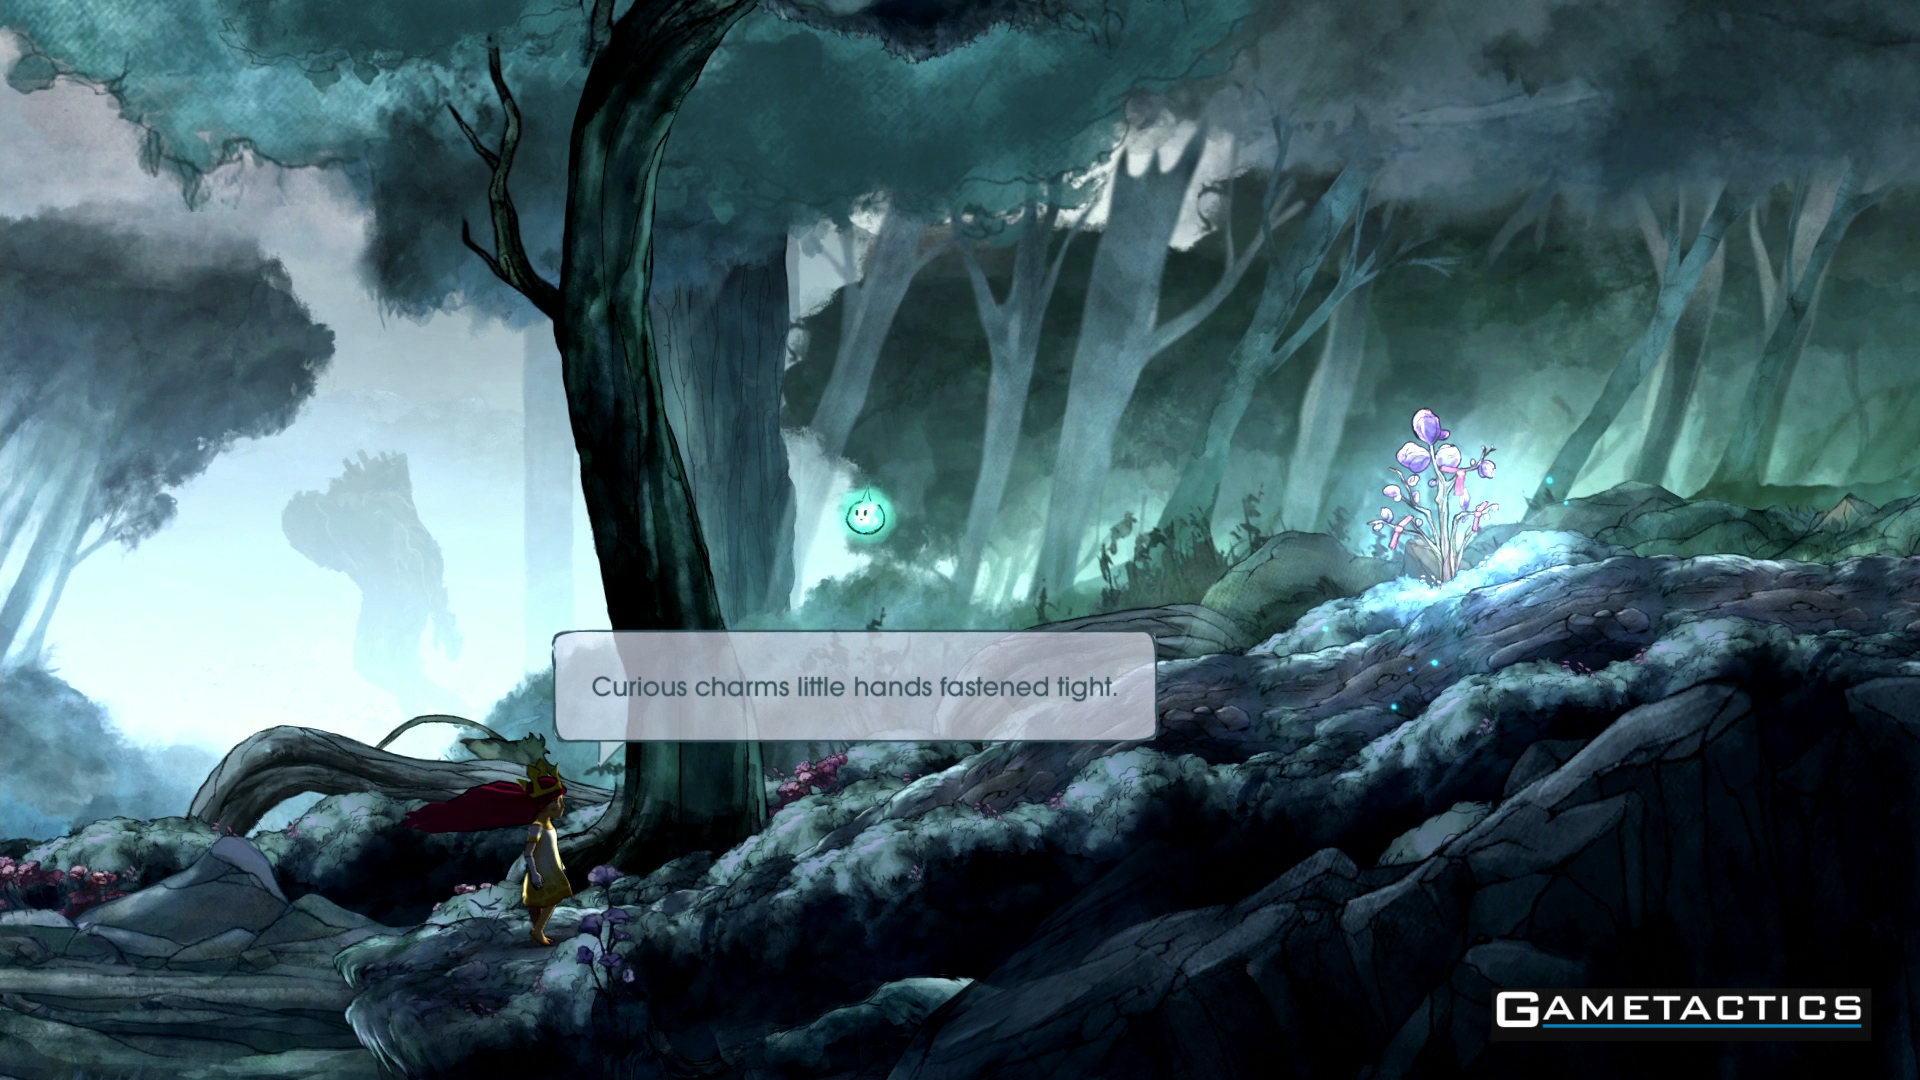 If You Are Looking For Something Different, Child Of Light Will Be Amazing  12 14 Hour Adventure/rpg Game To Add To Your Collection.